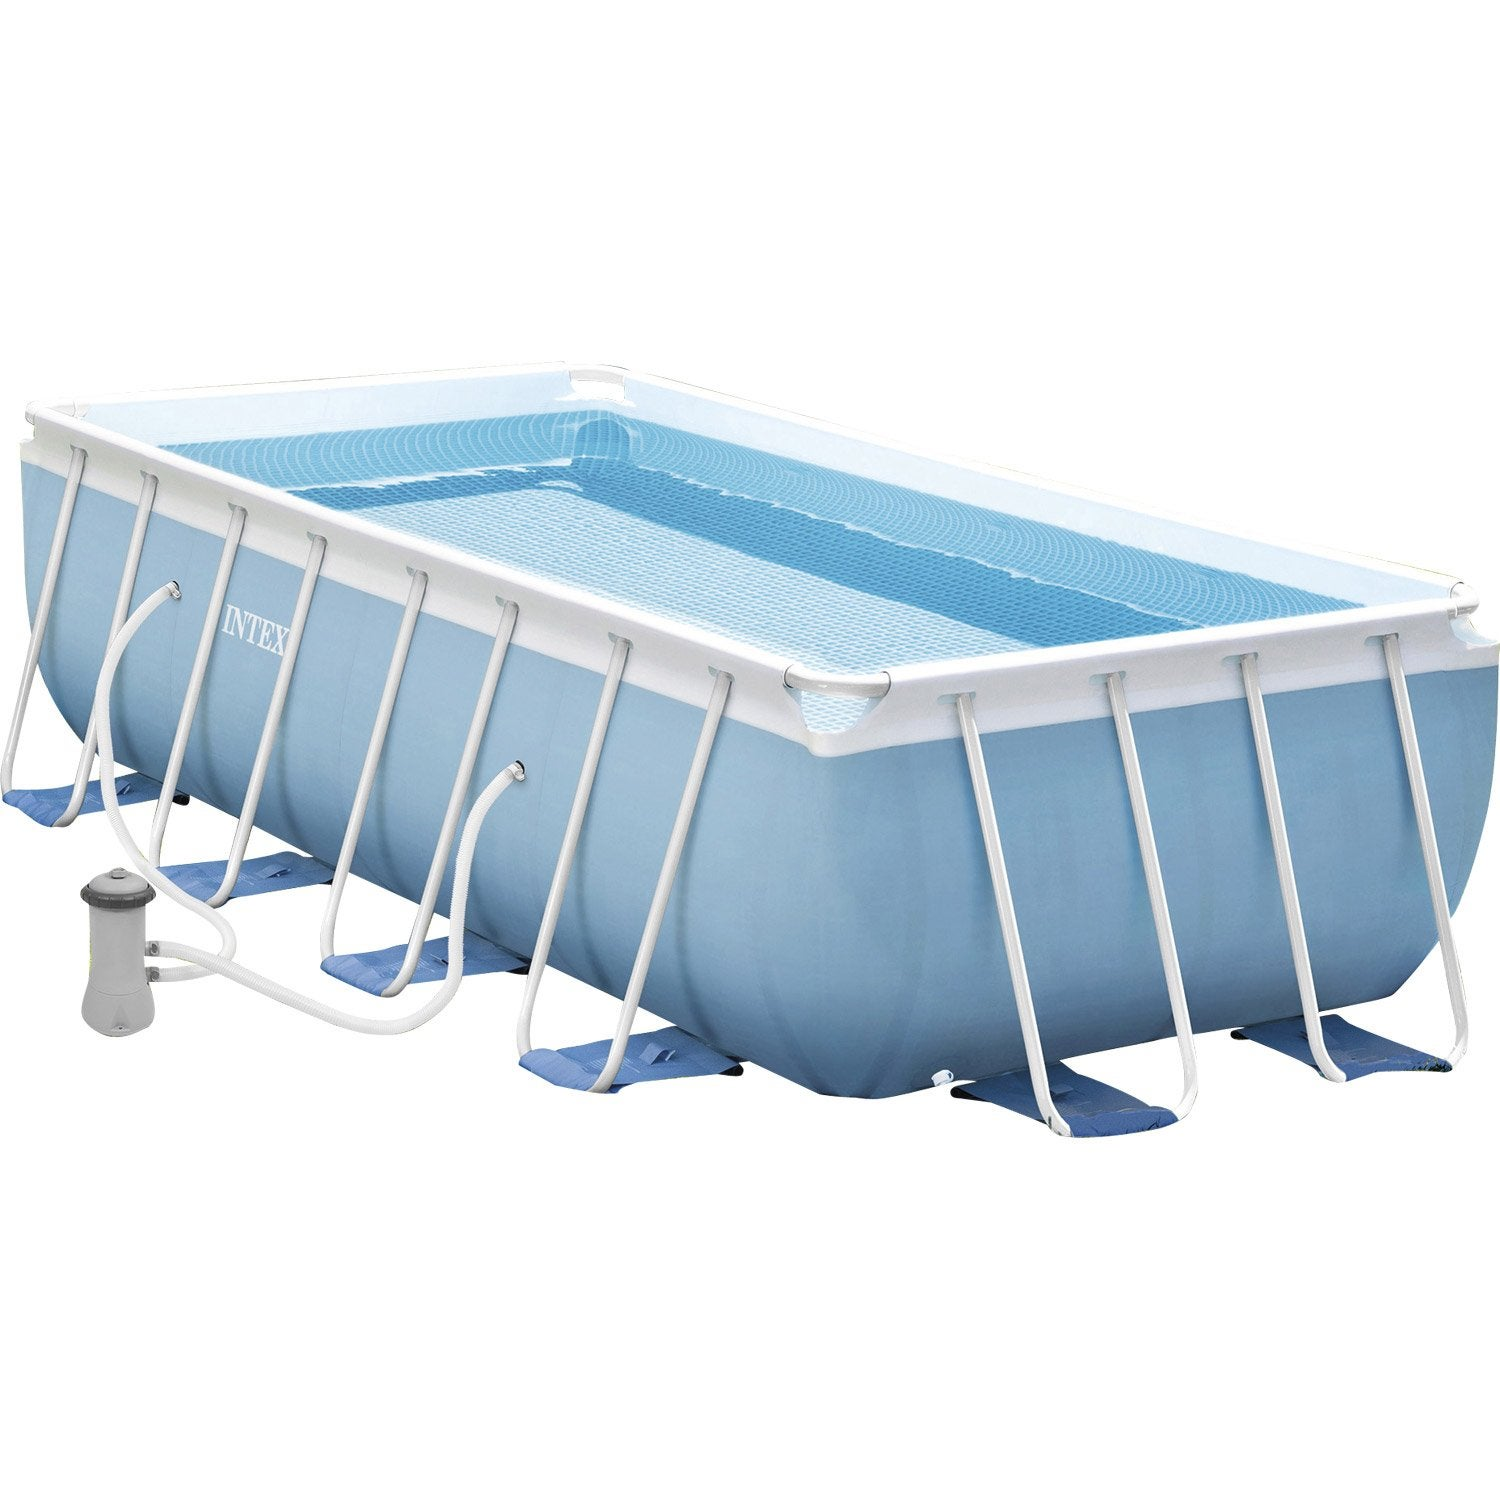 Piscine hors sol autoportante tubulaire intex l x l for Piscine tubulaire leroy merlin